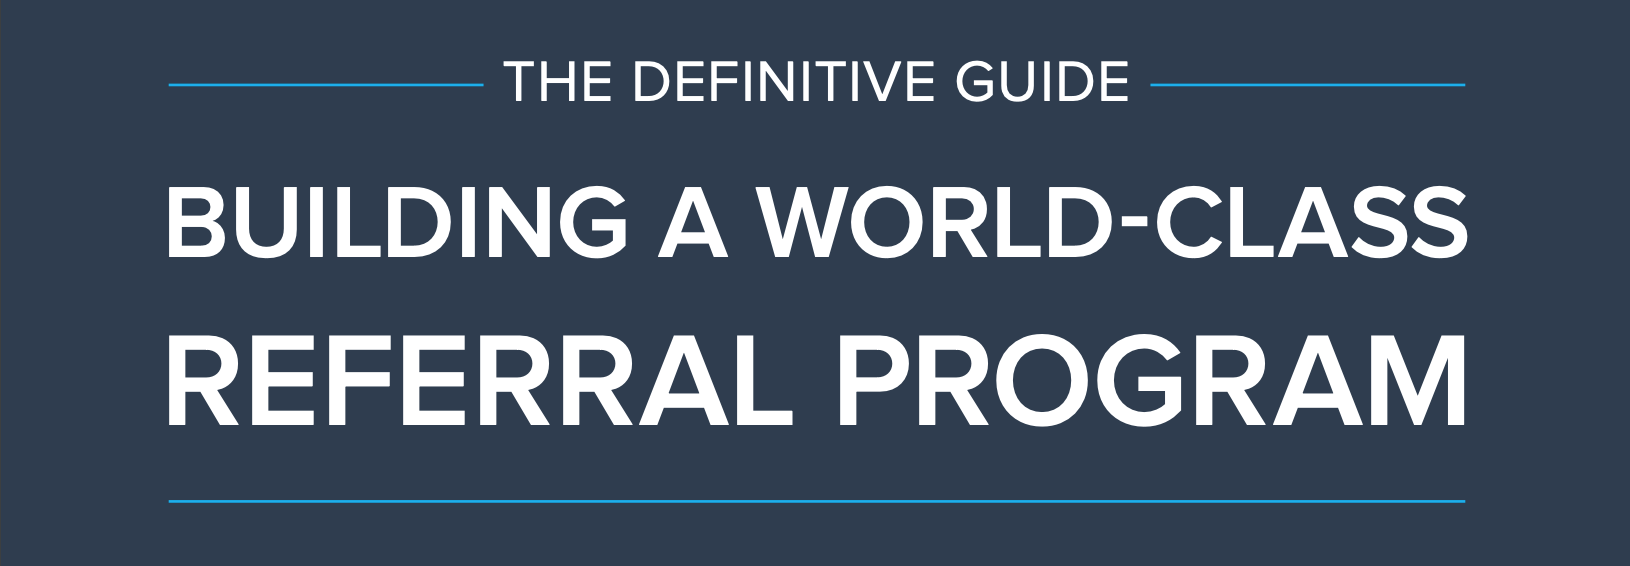 The Definitive Guide to Building a World-Class Referral Program